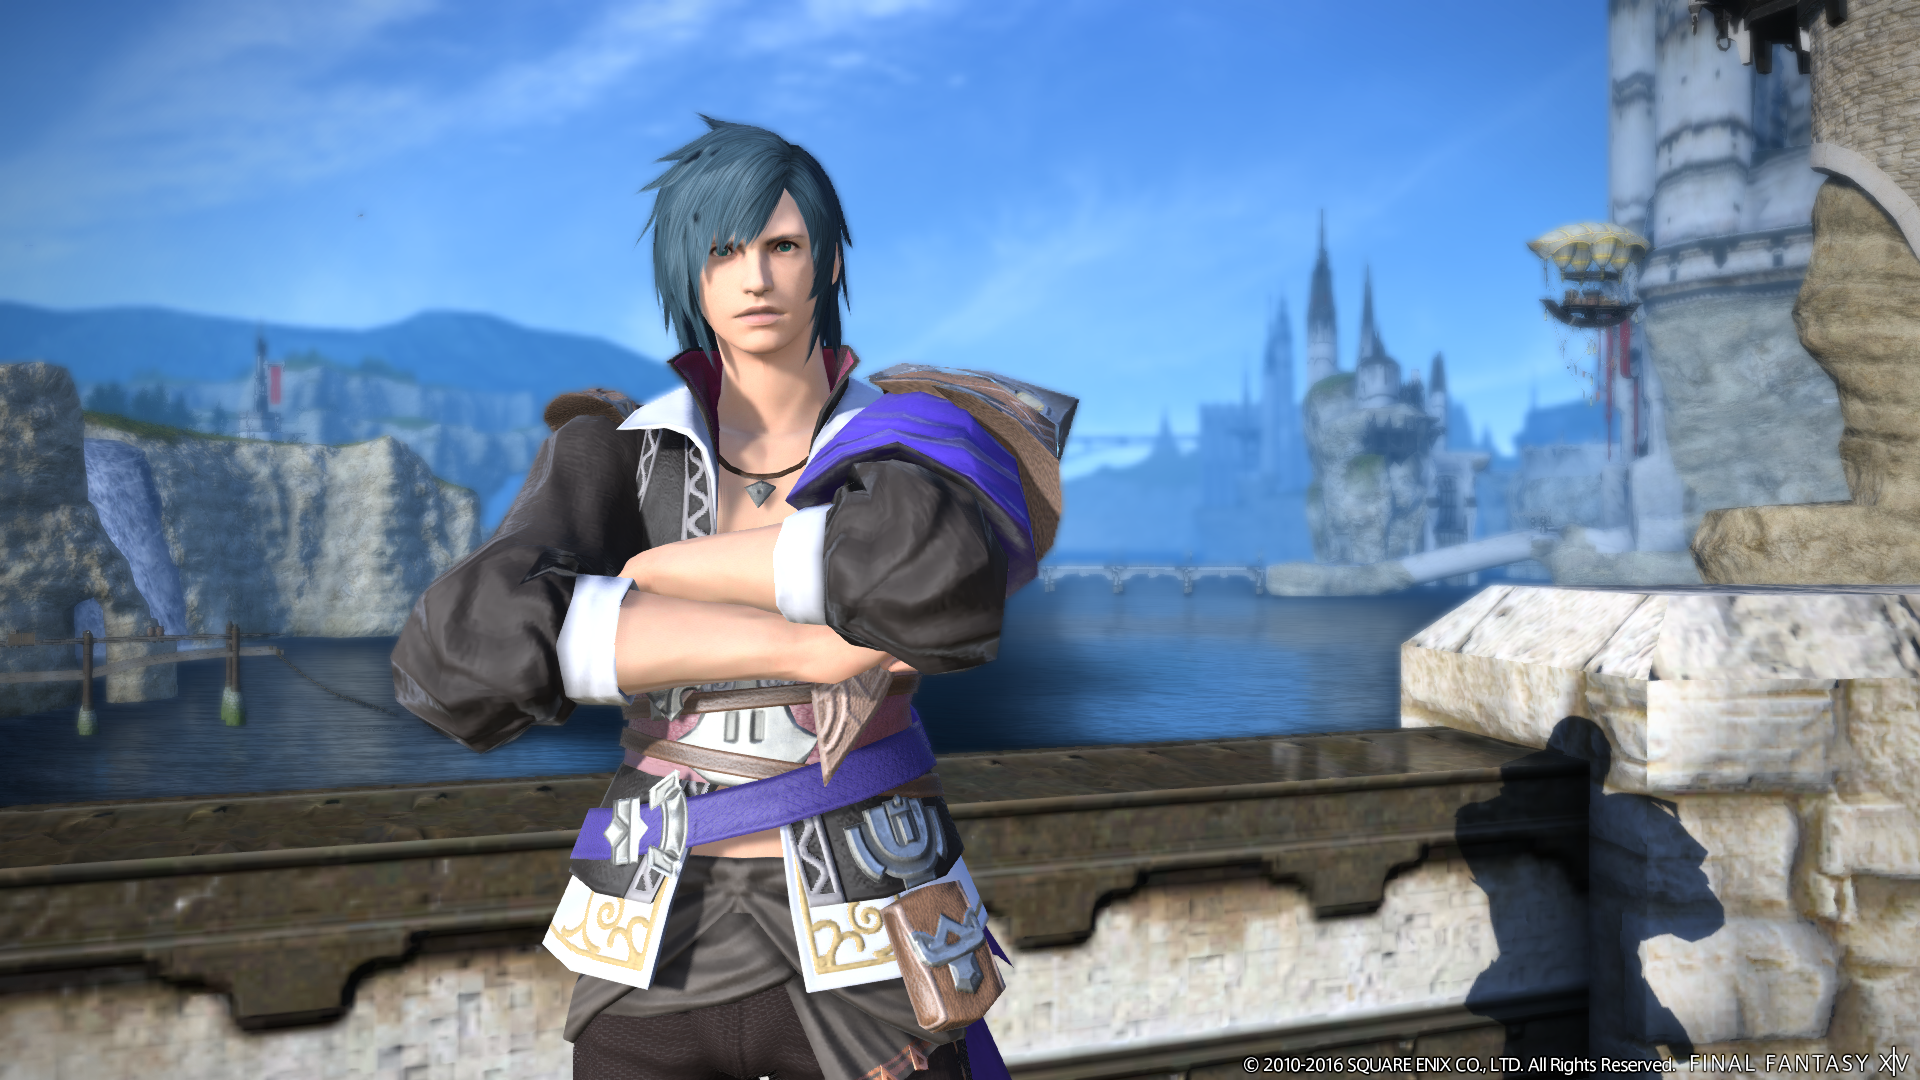 final fantasy xiv patch 3.3 brings new emotes, hairstyles, mounts